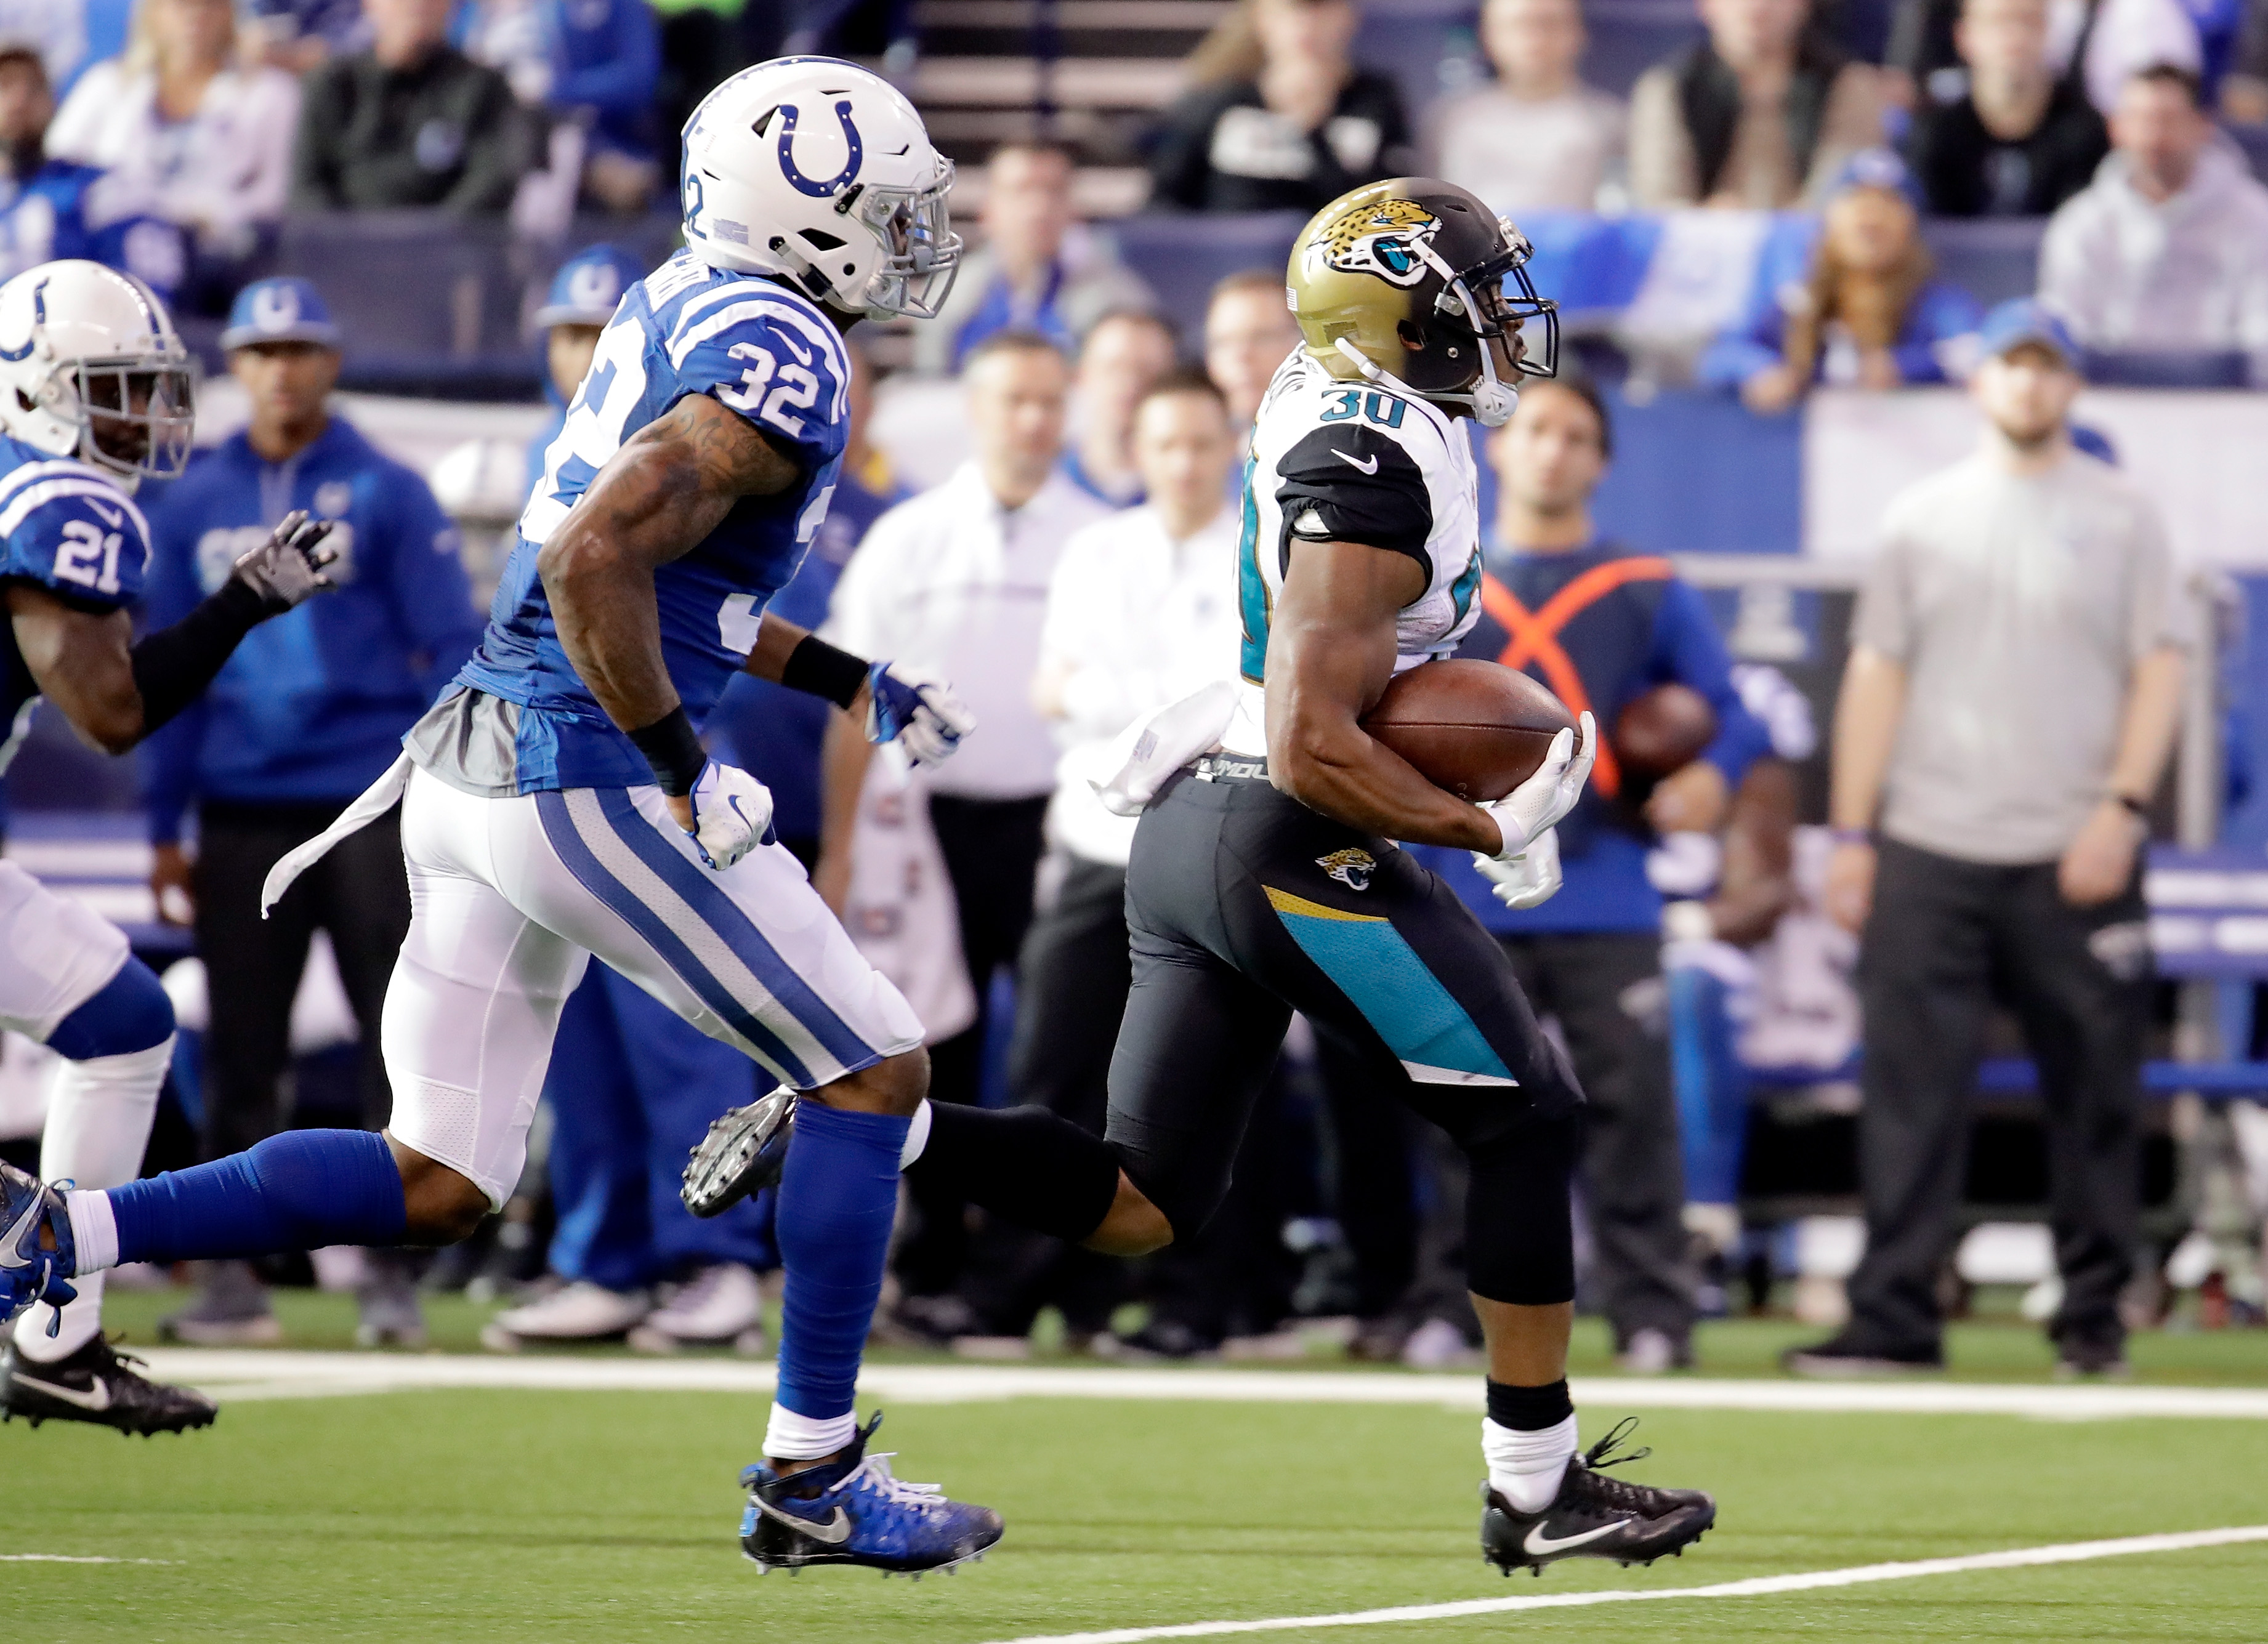 Jacksonville jaguars vs indianapolis colts three keys to a indianapolis colts three keys to a victory in week 7 voltagebd Gallery